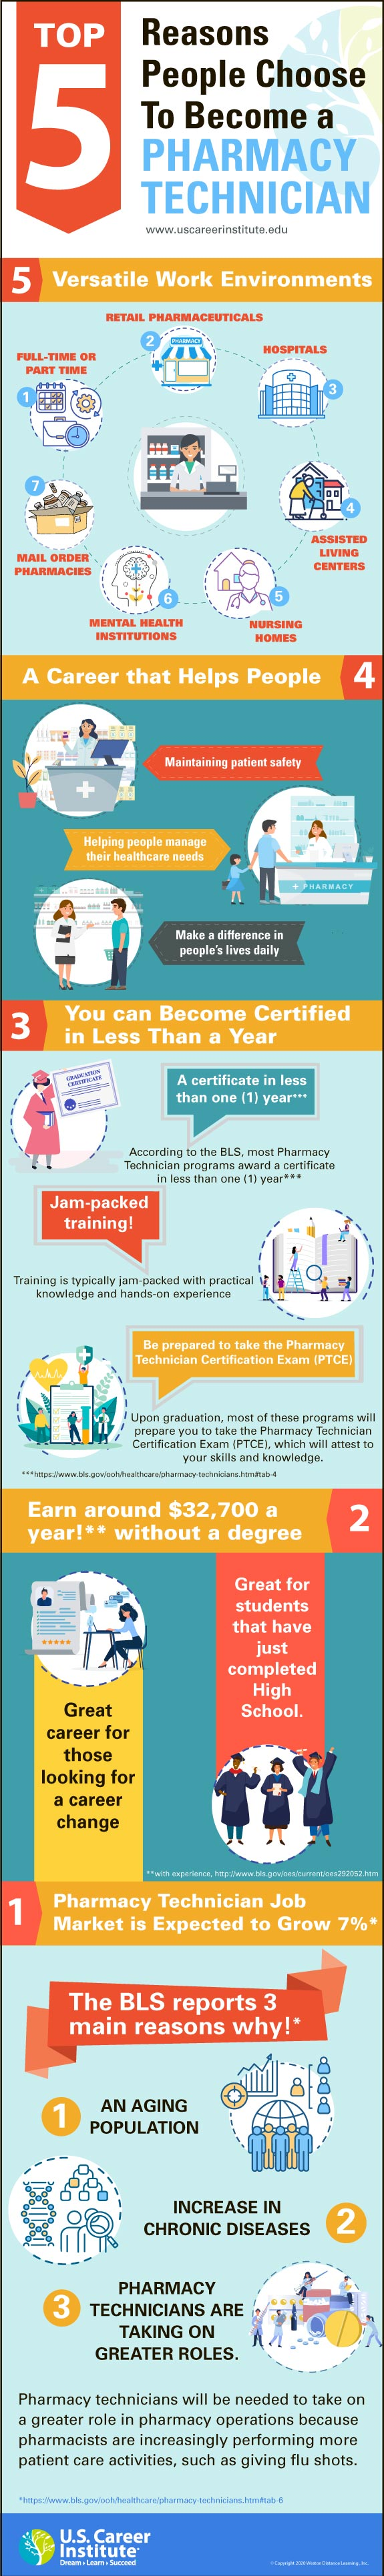 Top 5 Reasons to become a Pharmacy Technician